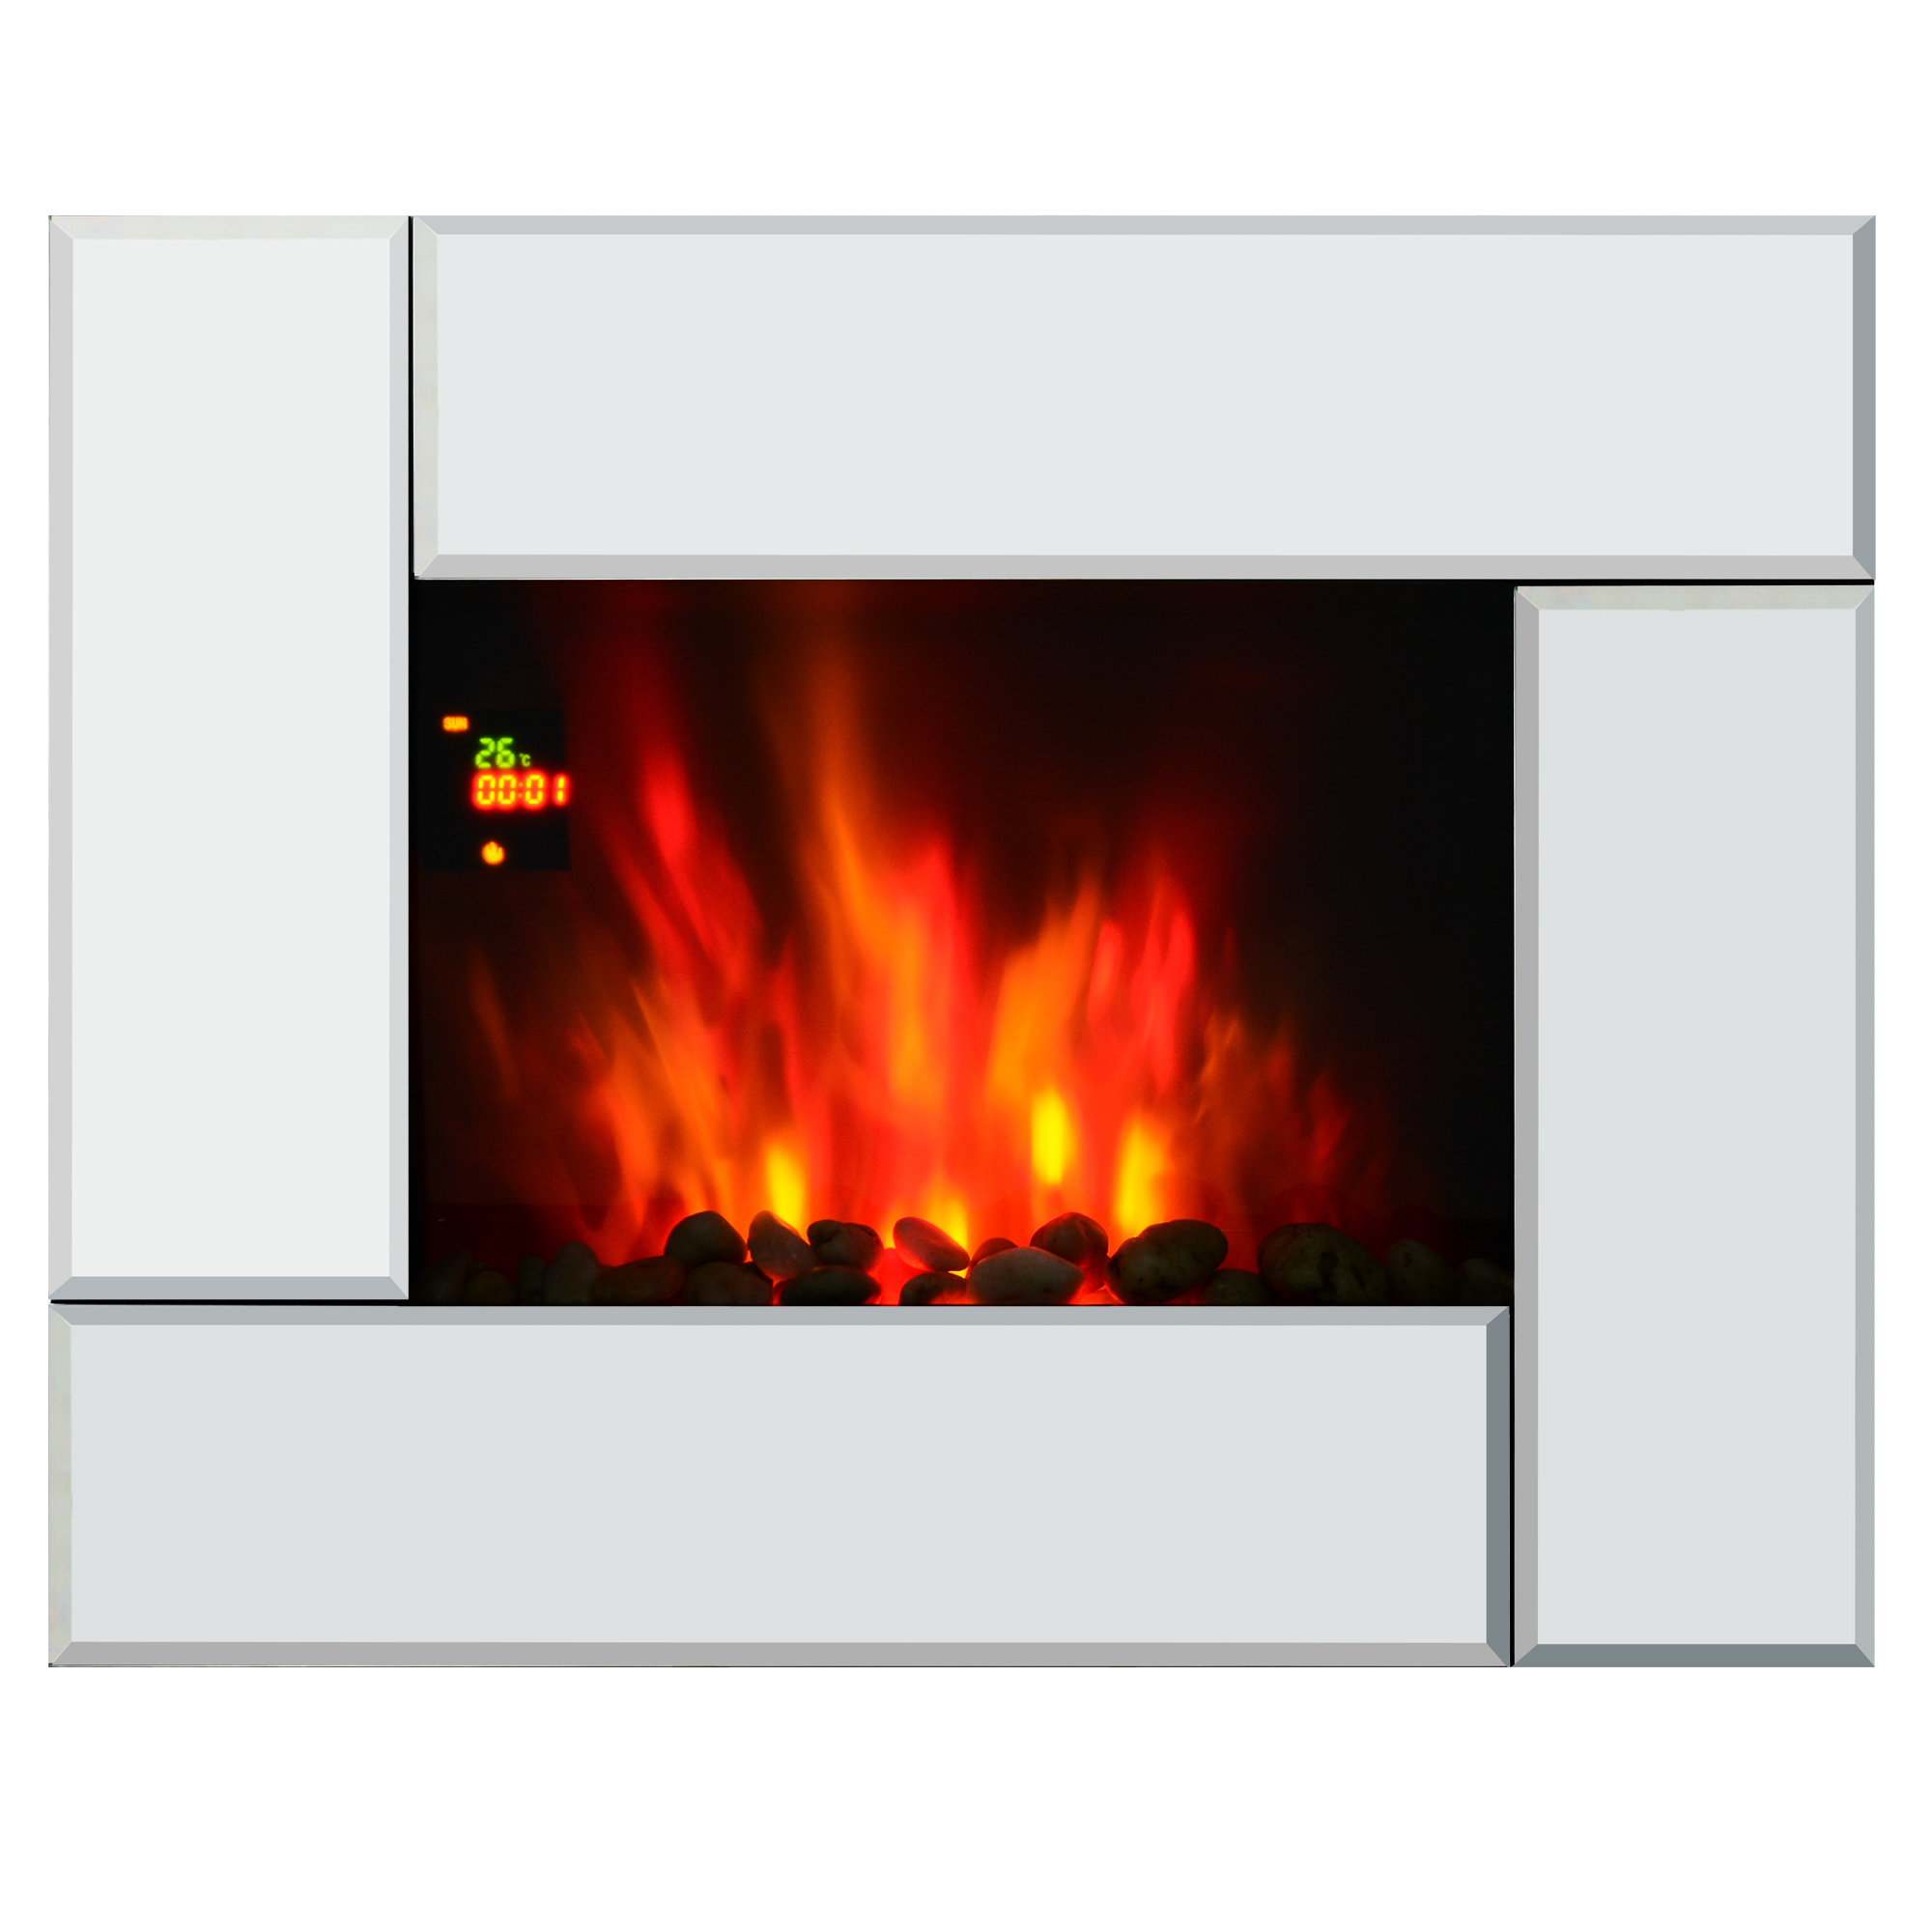 Image of £96.99 HOMCOM Electric Fireplace Heater, Flame Effect / 1800W Wall Mounted Heater 7 Coloured LED Light Fire Glass Screen with Pebble & Remote Control Mount Day 820-078 5056029801352